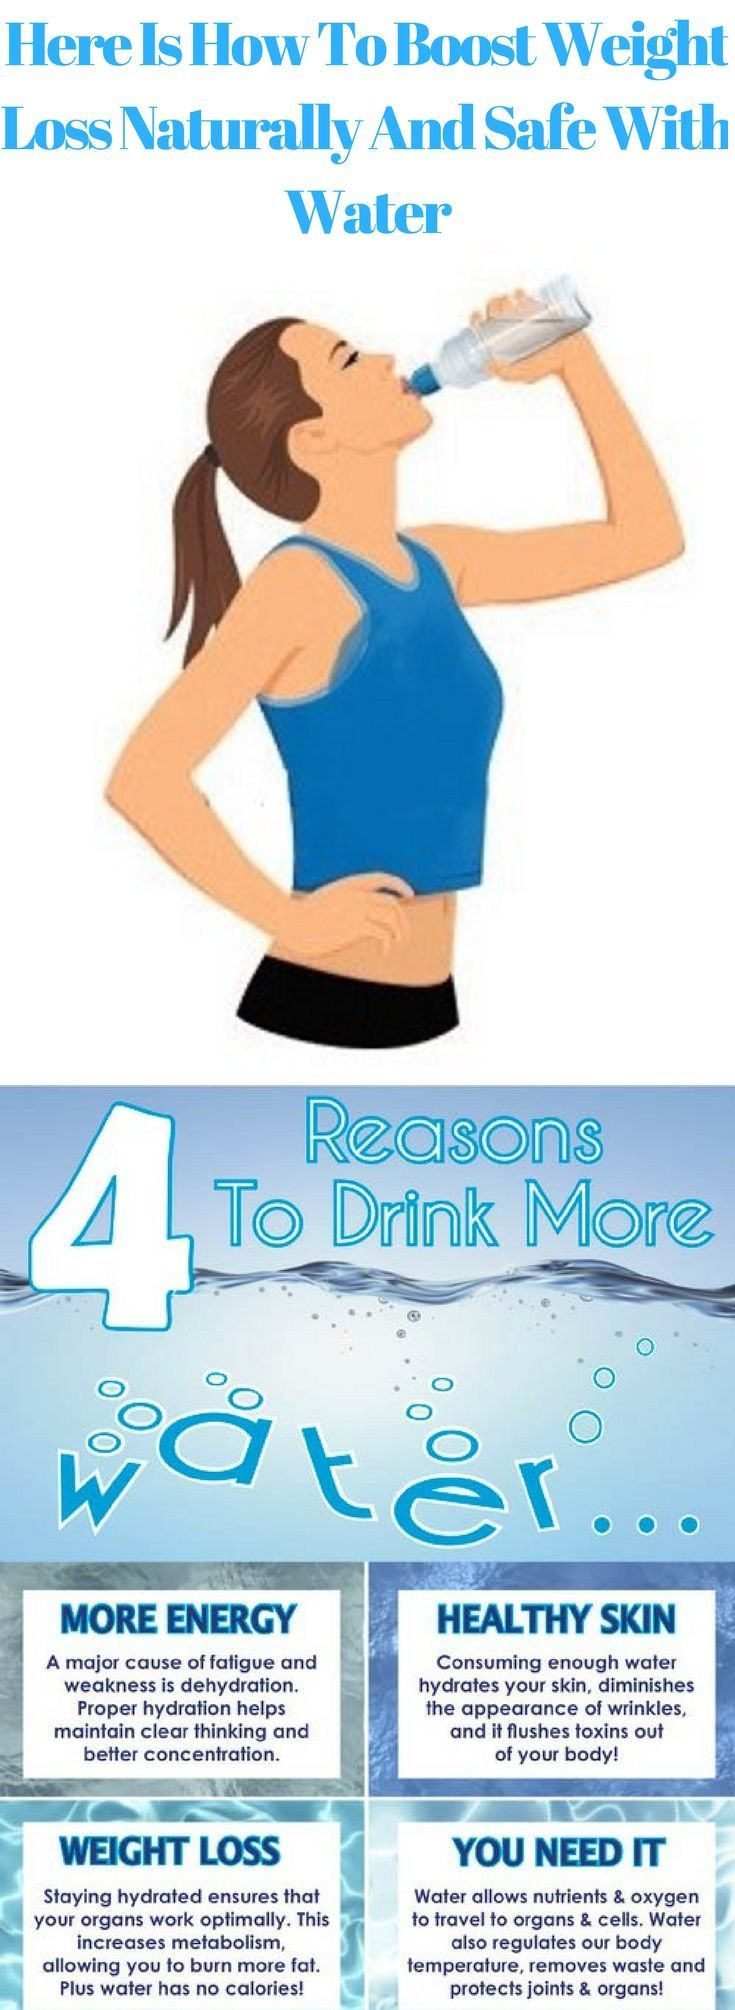 How To Boost Weight Loss Naturally And Safe With Water